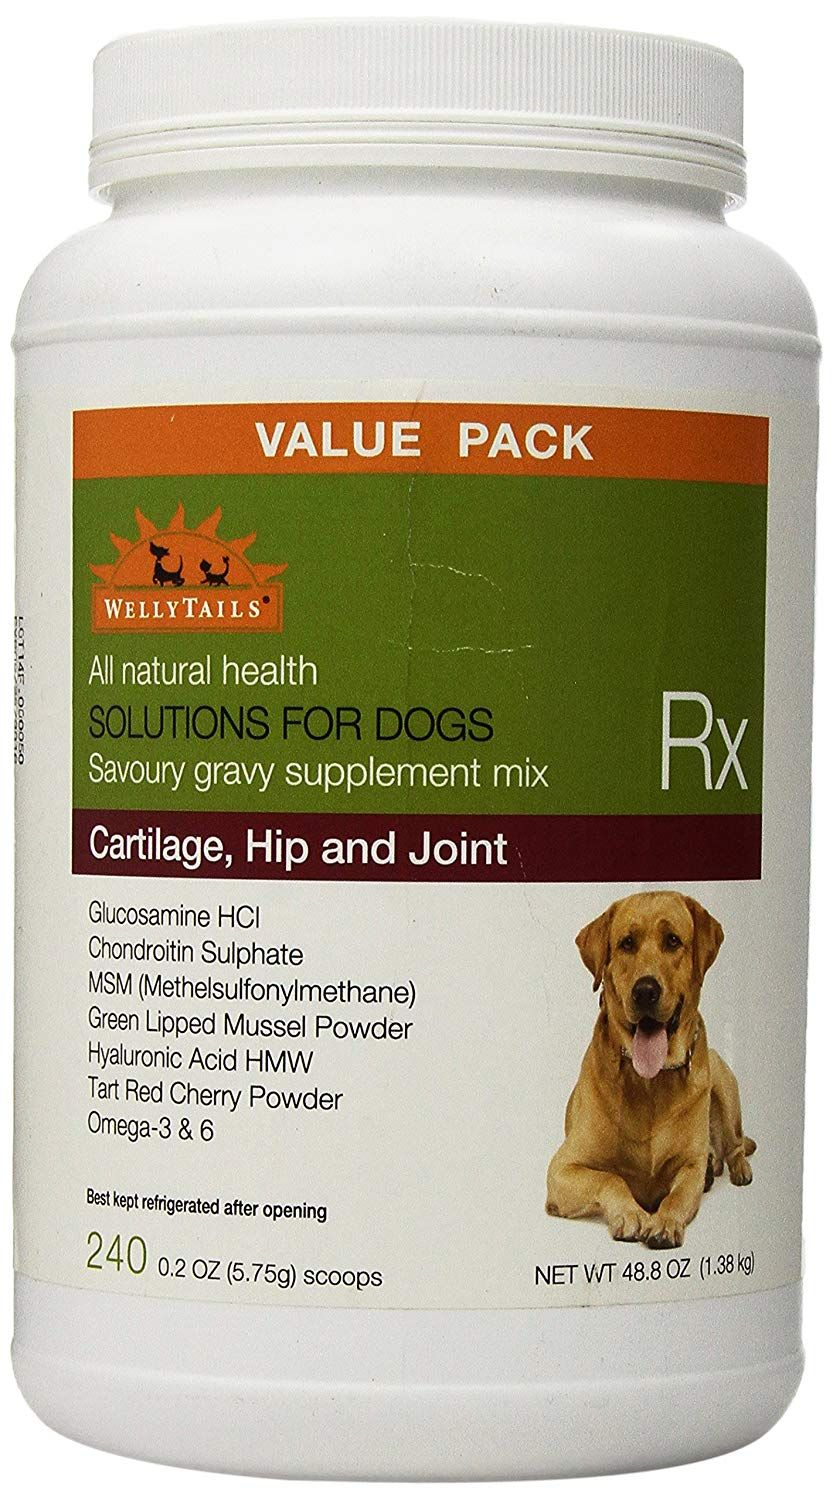 WellyTails Dog Supplement for Cartilage, Hip and Joint